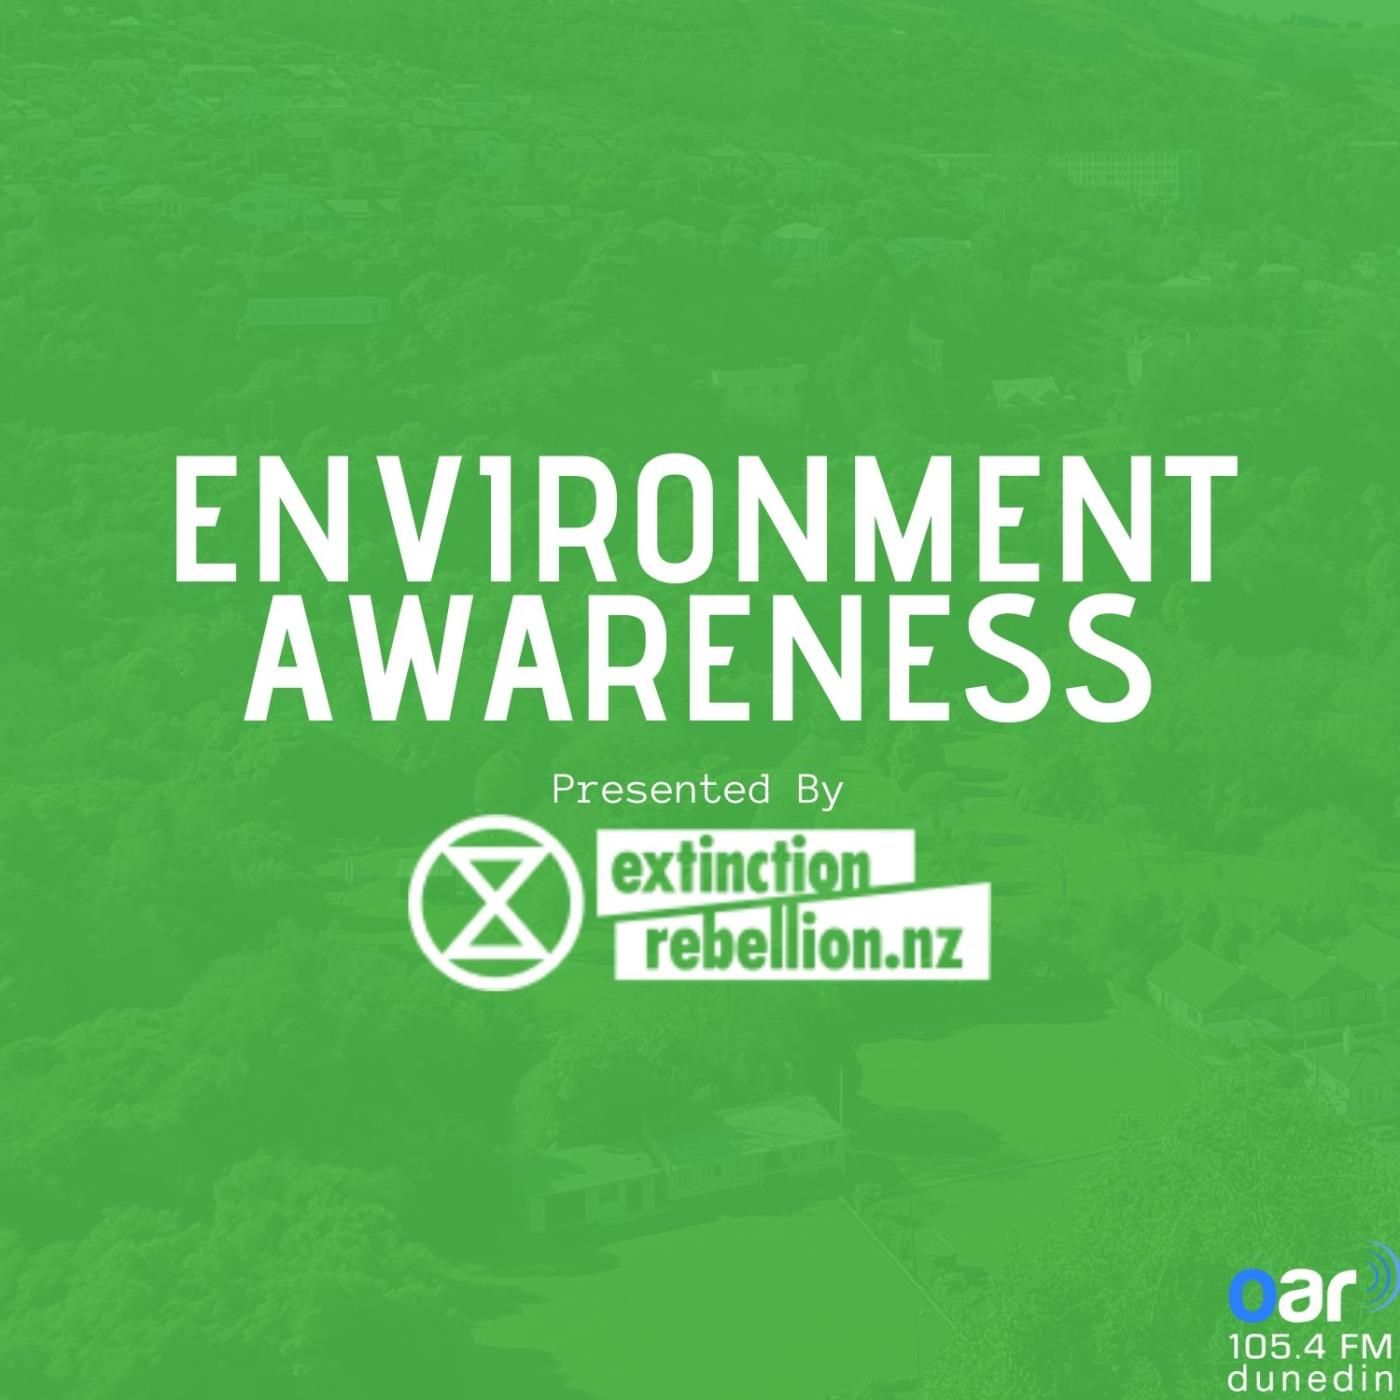 Environment Awareness - 04-06-2020 - Show 35 - Diversity in Activism - Katya Wisnewski